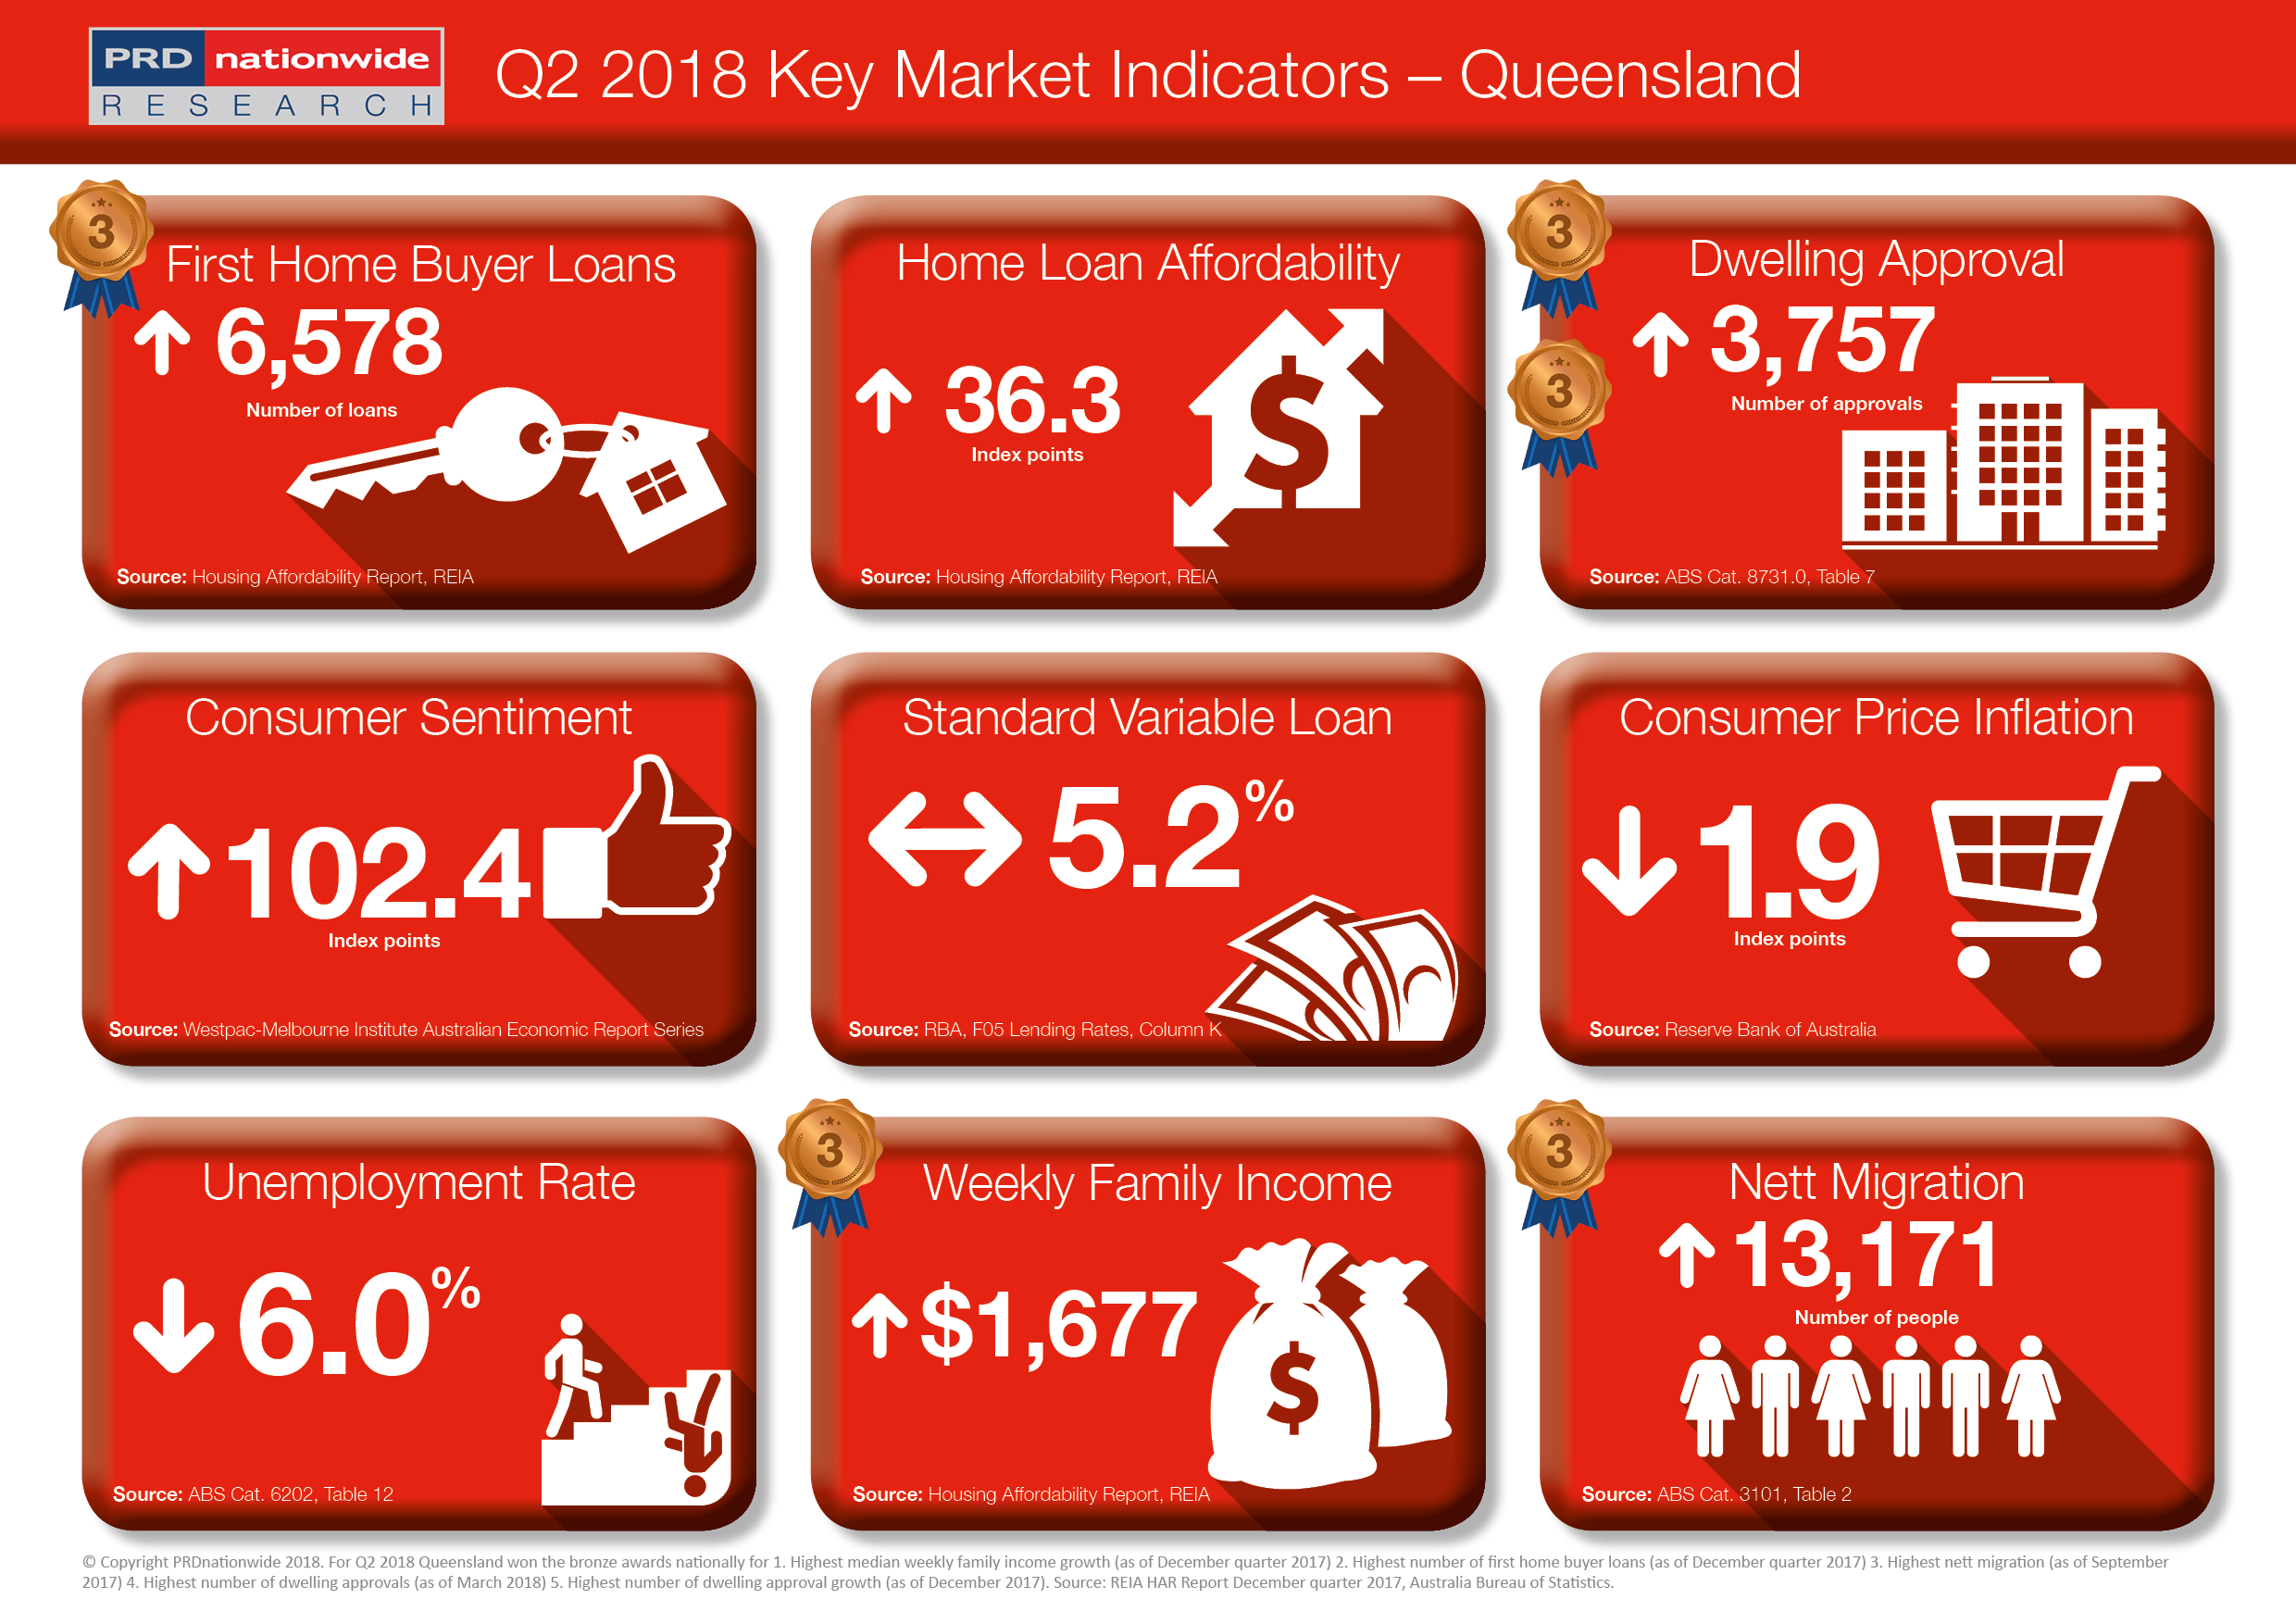 PRDnationwide Q2 Key Market Indicators 2018 - QLD.png